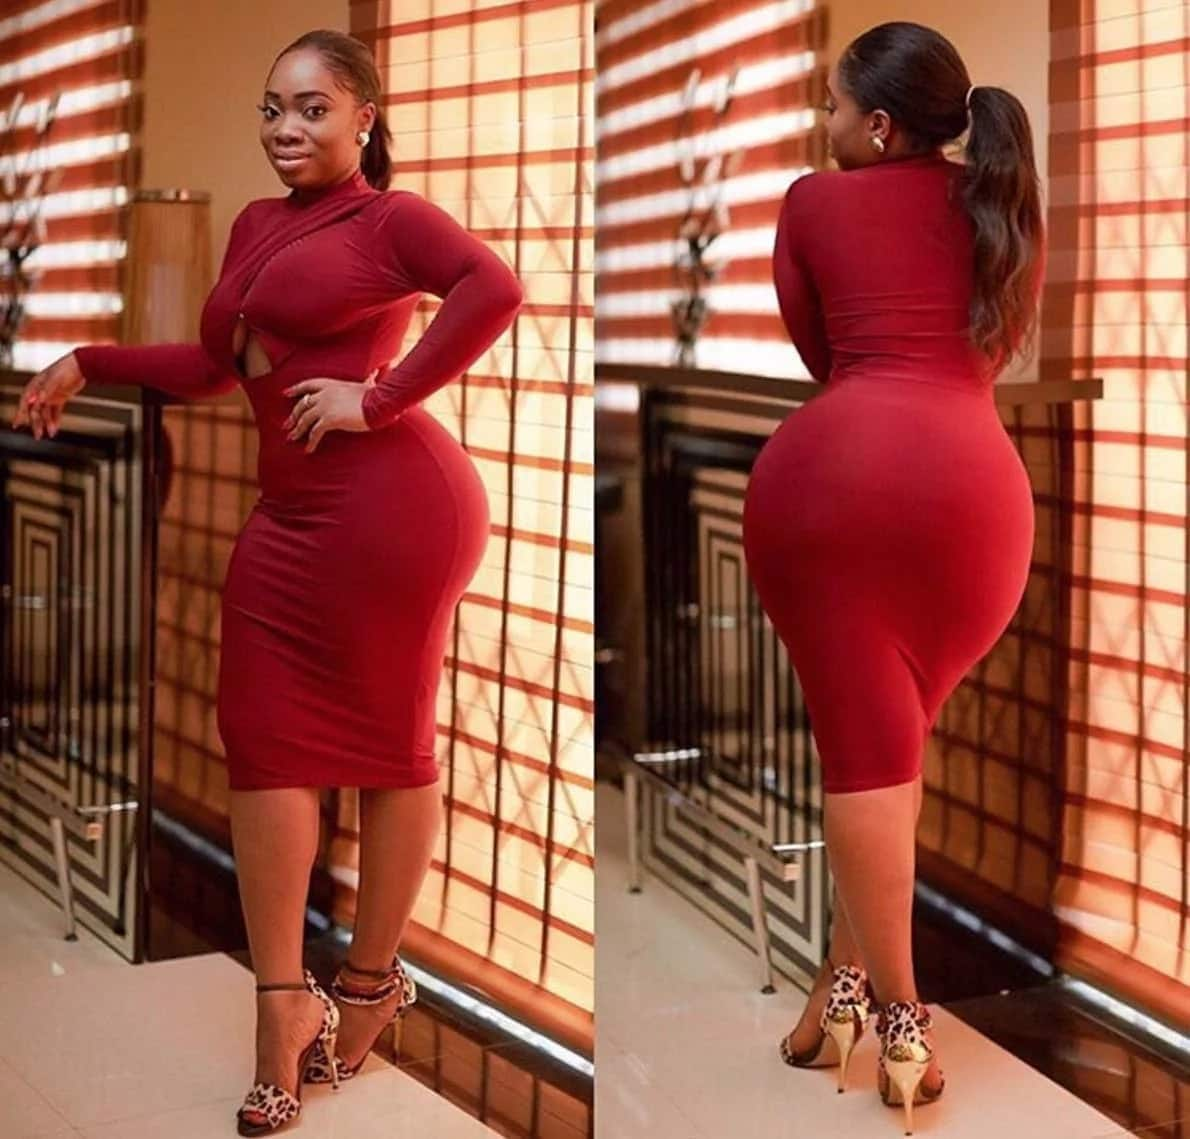 Moesha Boduong Biography: Her Background, Career, and Lifestyle